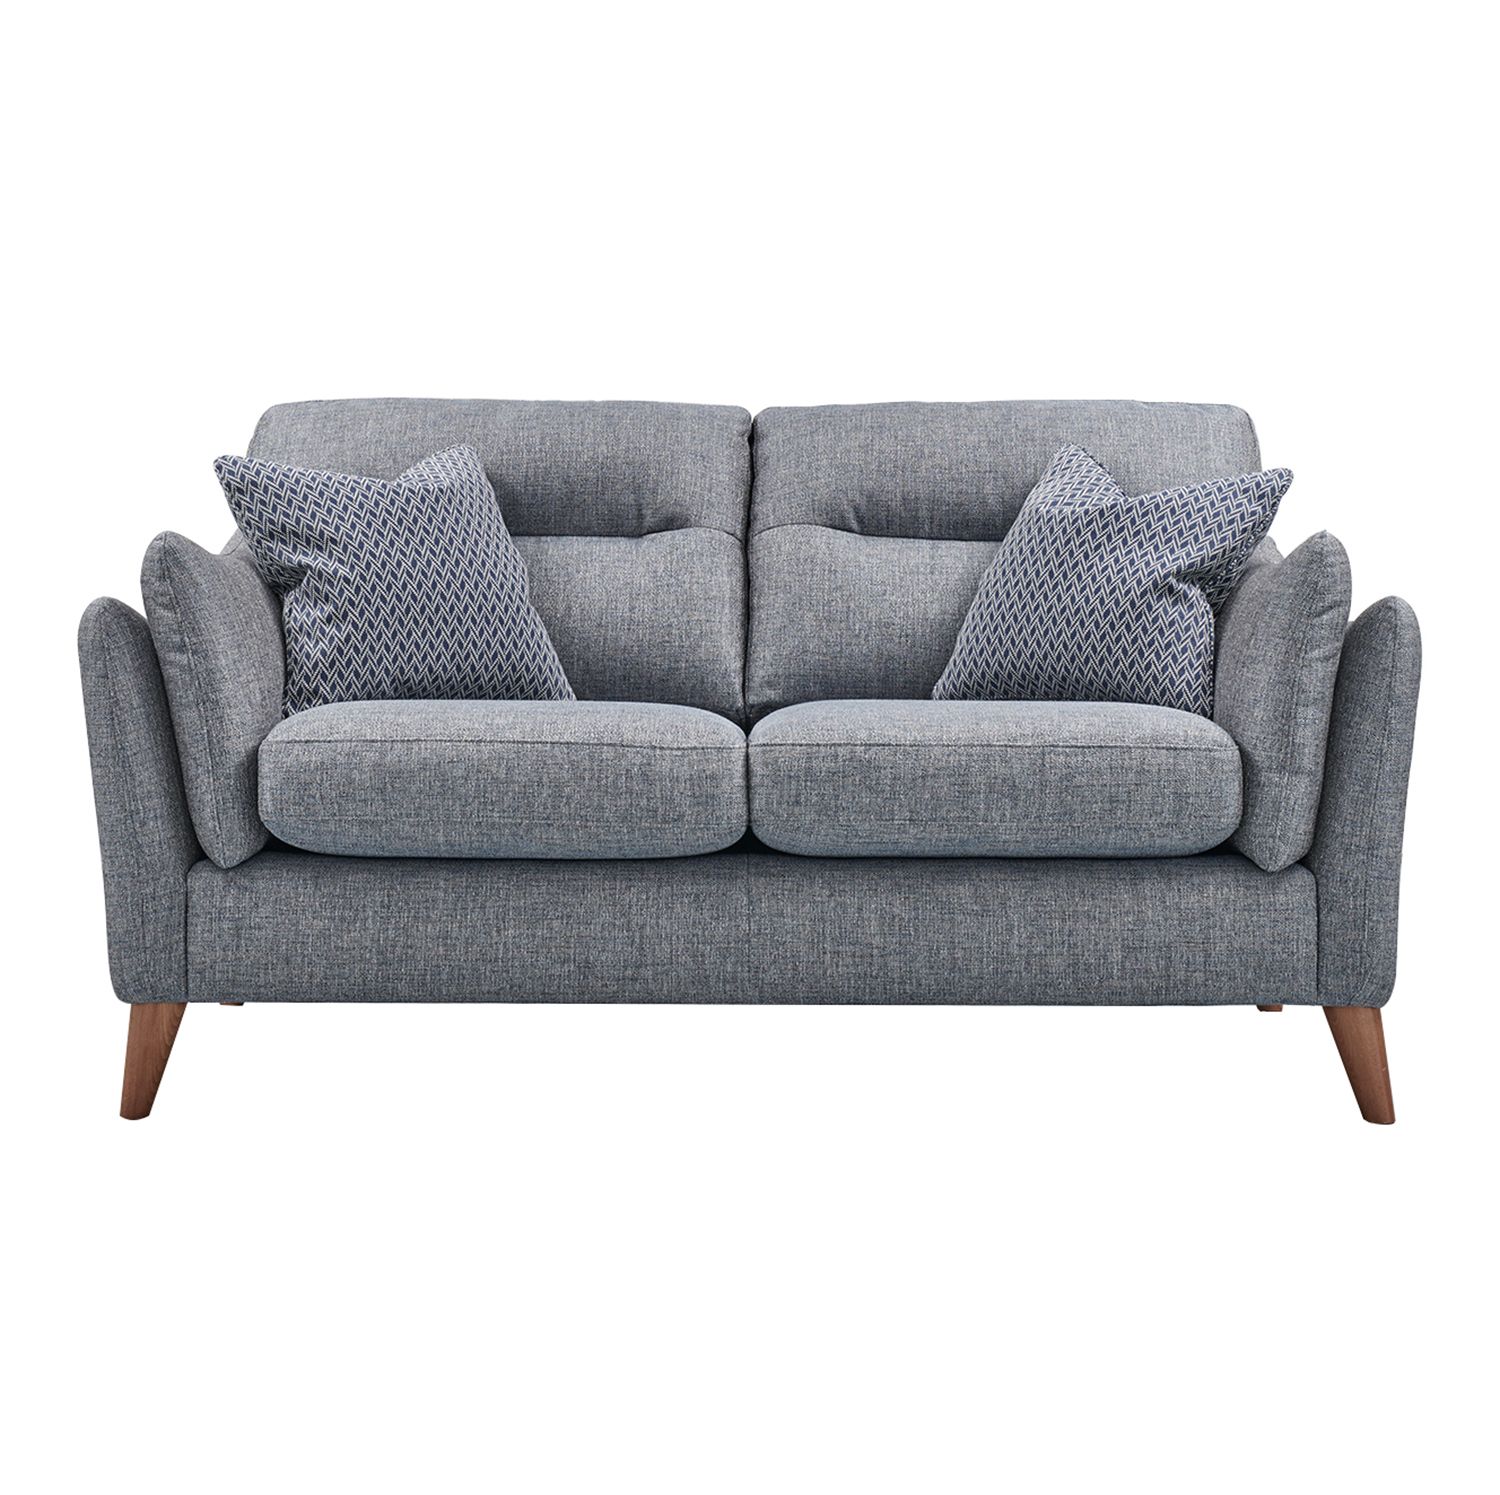 Cassie 2 Seater Sofa